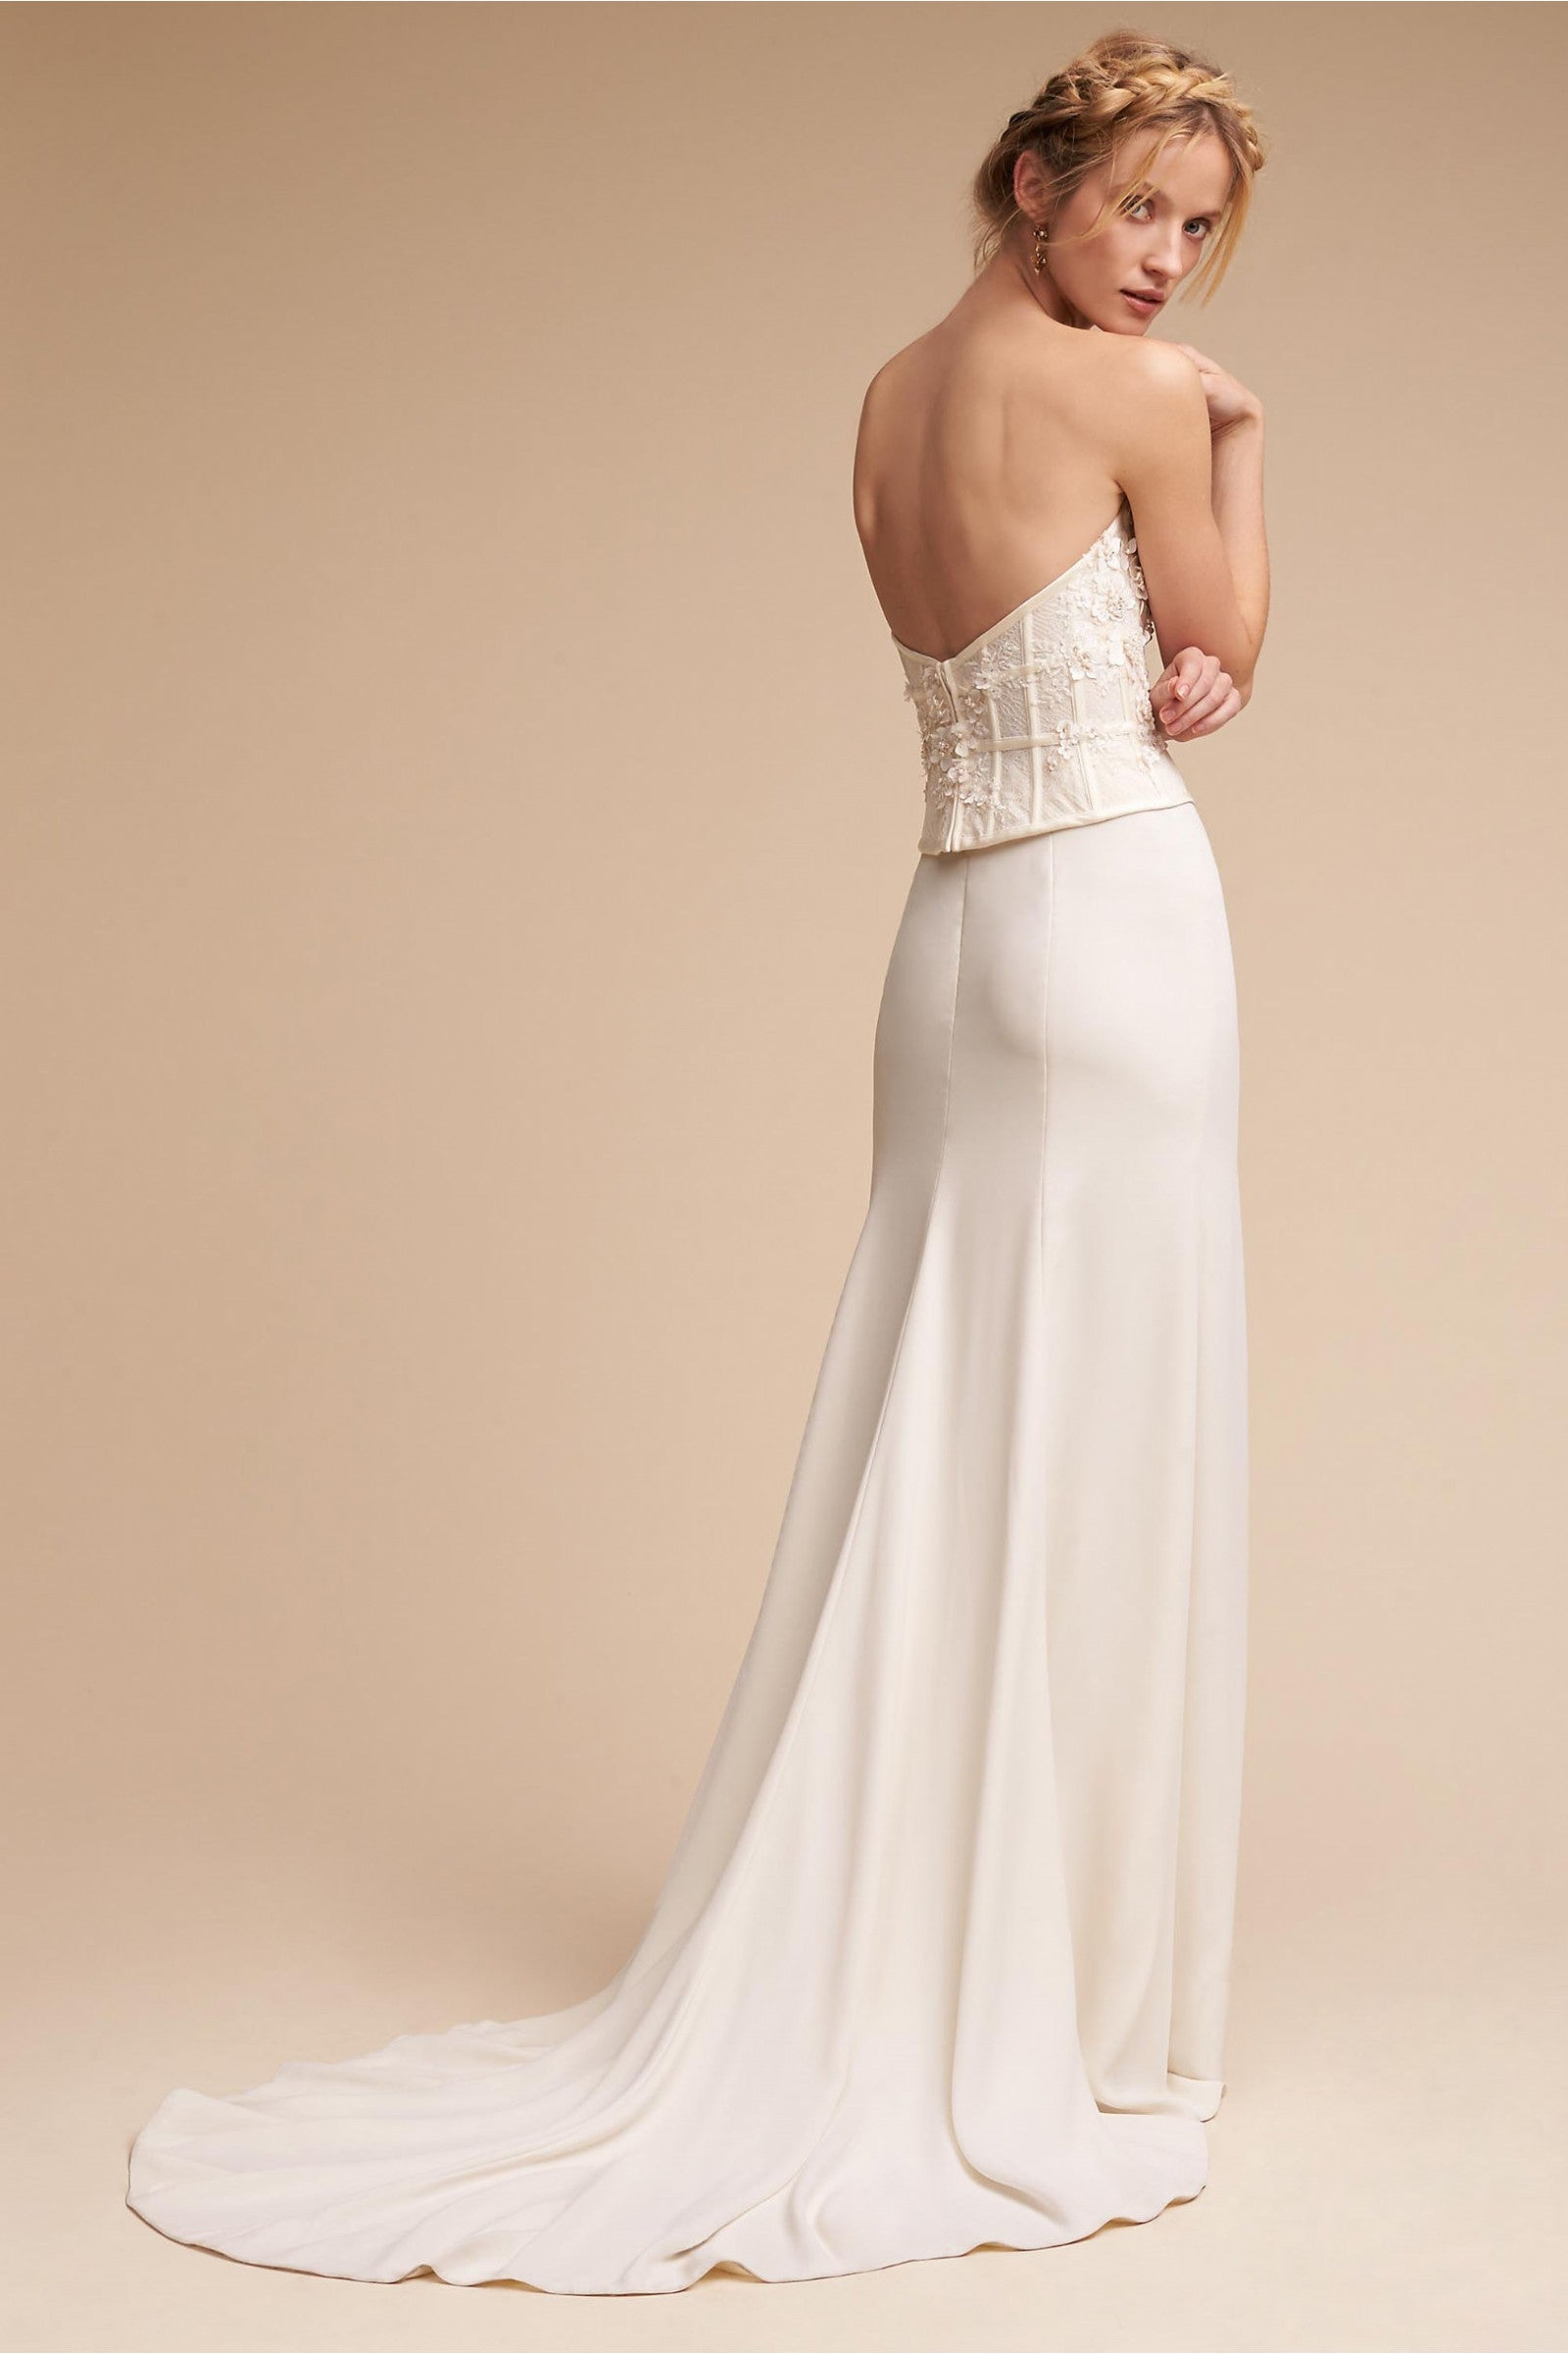 BHLDN Willowby by Watters Nikkie 58355 Skirt